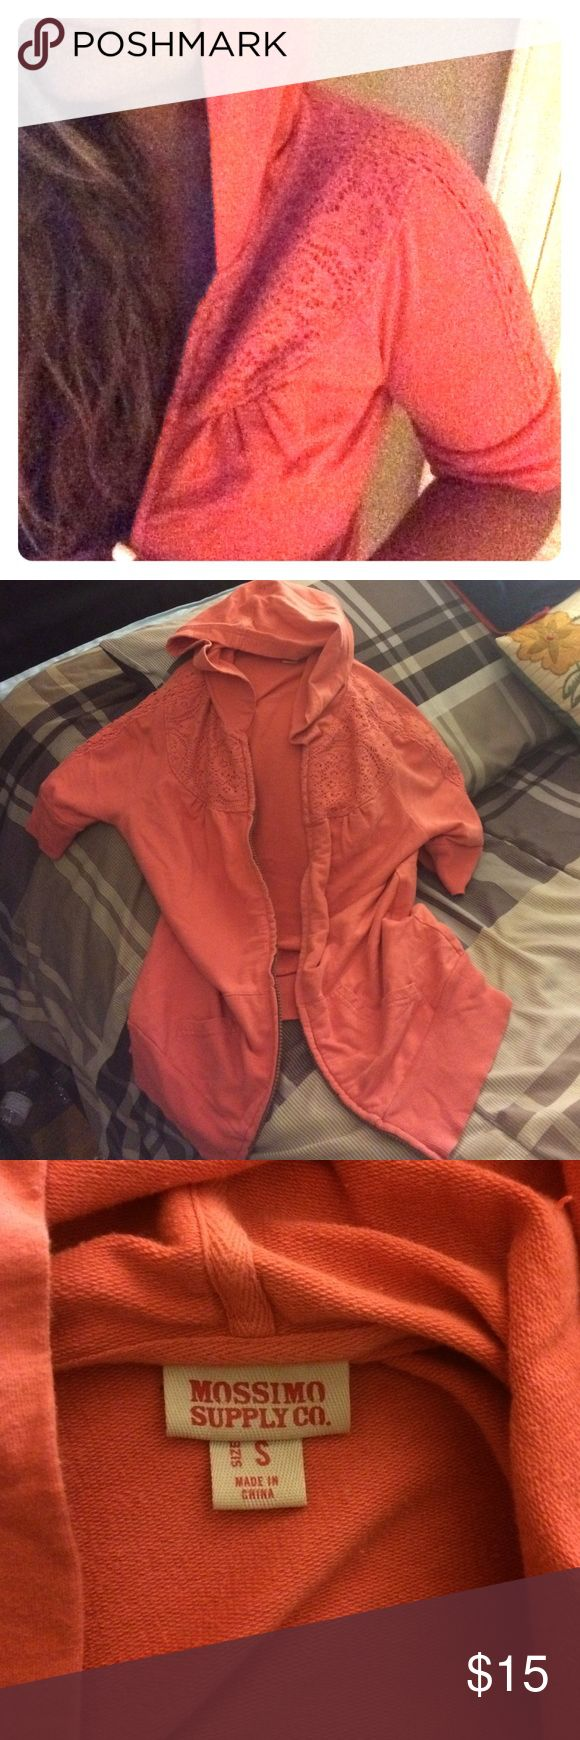 Short sleeve coral zip up hoodie Short sleeve zip up hoodie with crochet detailing - have worn as a bathing suit cover up once - no damage - coral color - like new condition - versatile piece Mossimo Supply Co. Tops Sweatshirts & Hoodies